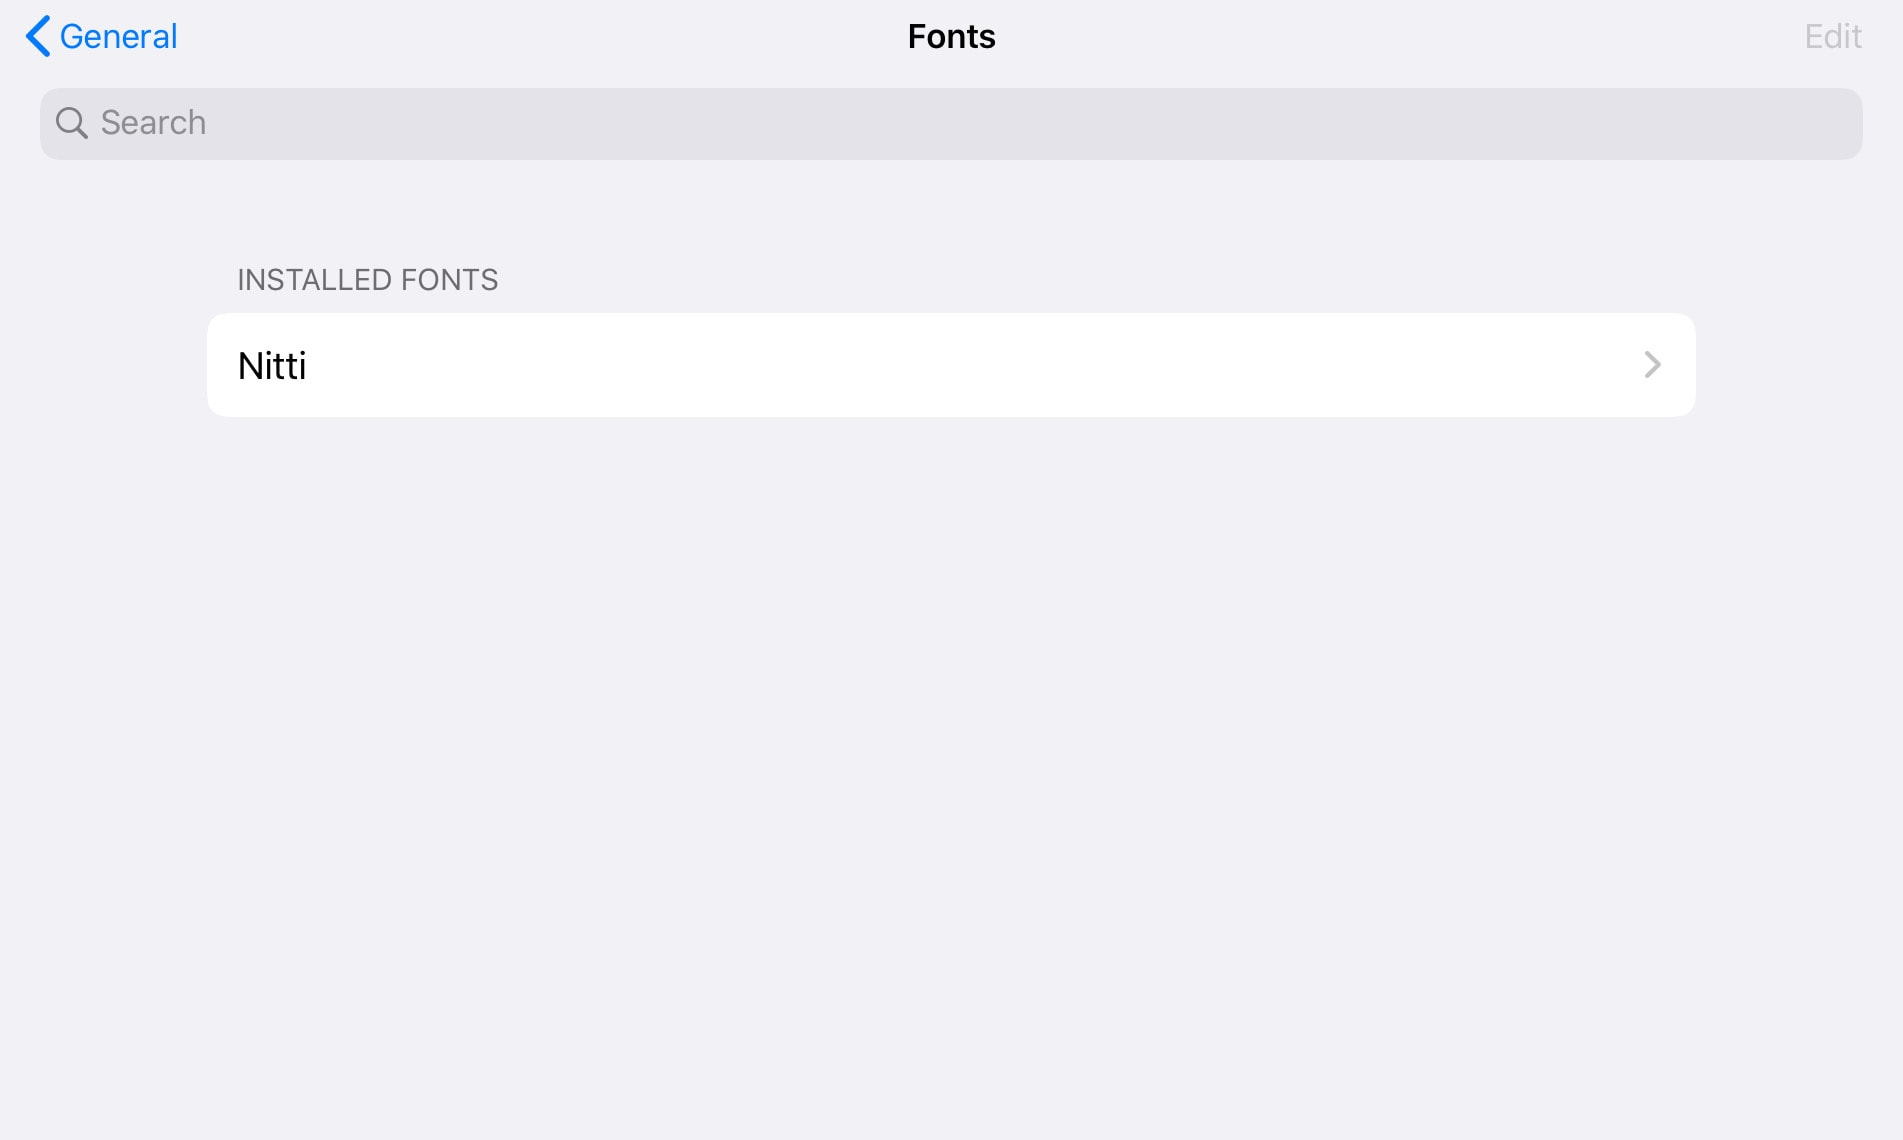 All your installed iOS fonts show up in the Settings app.